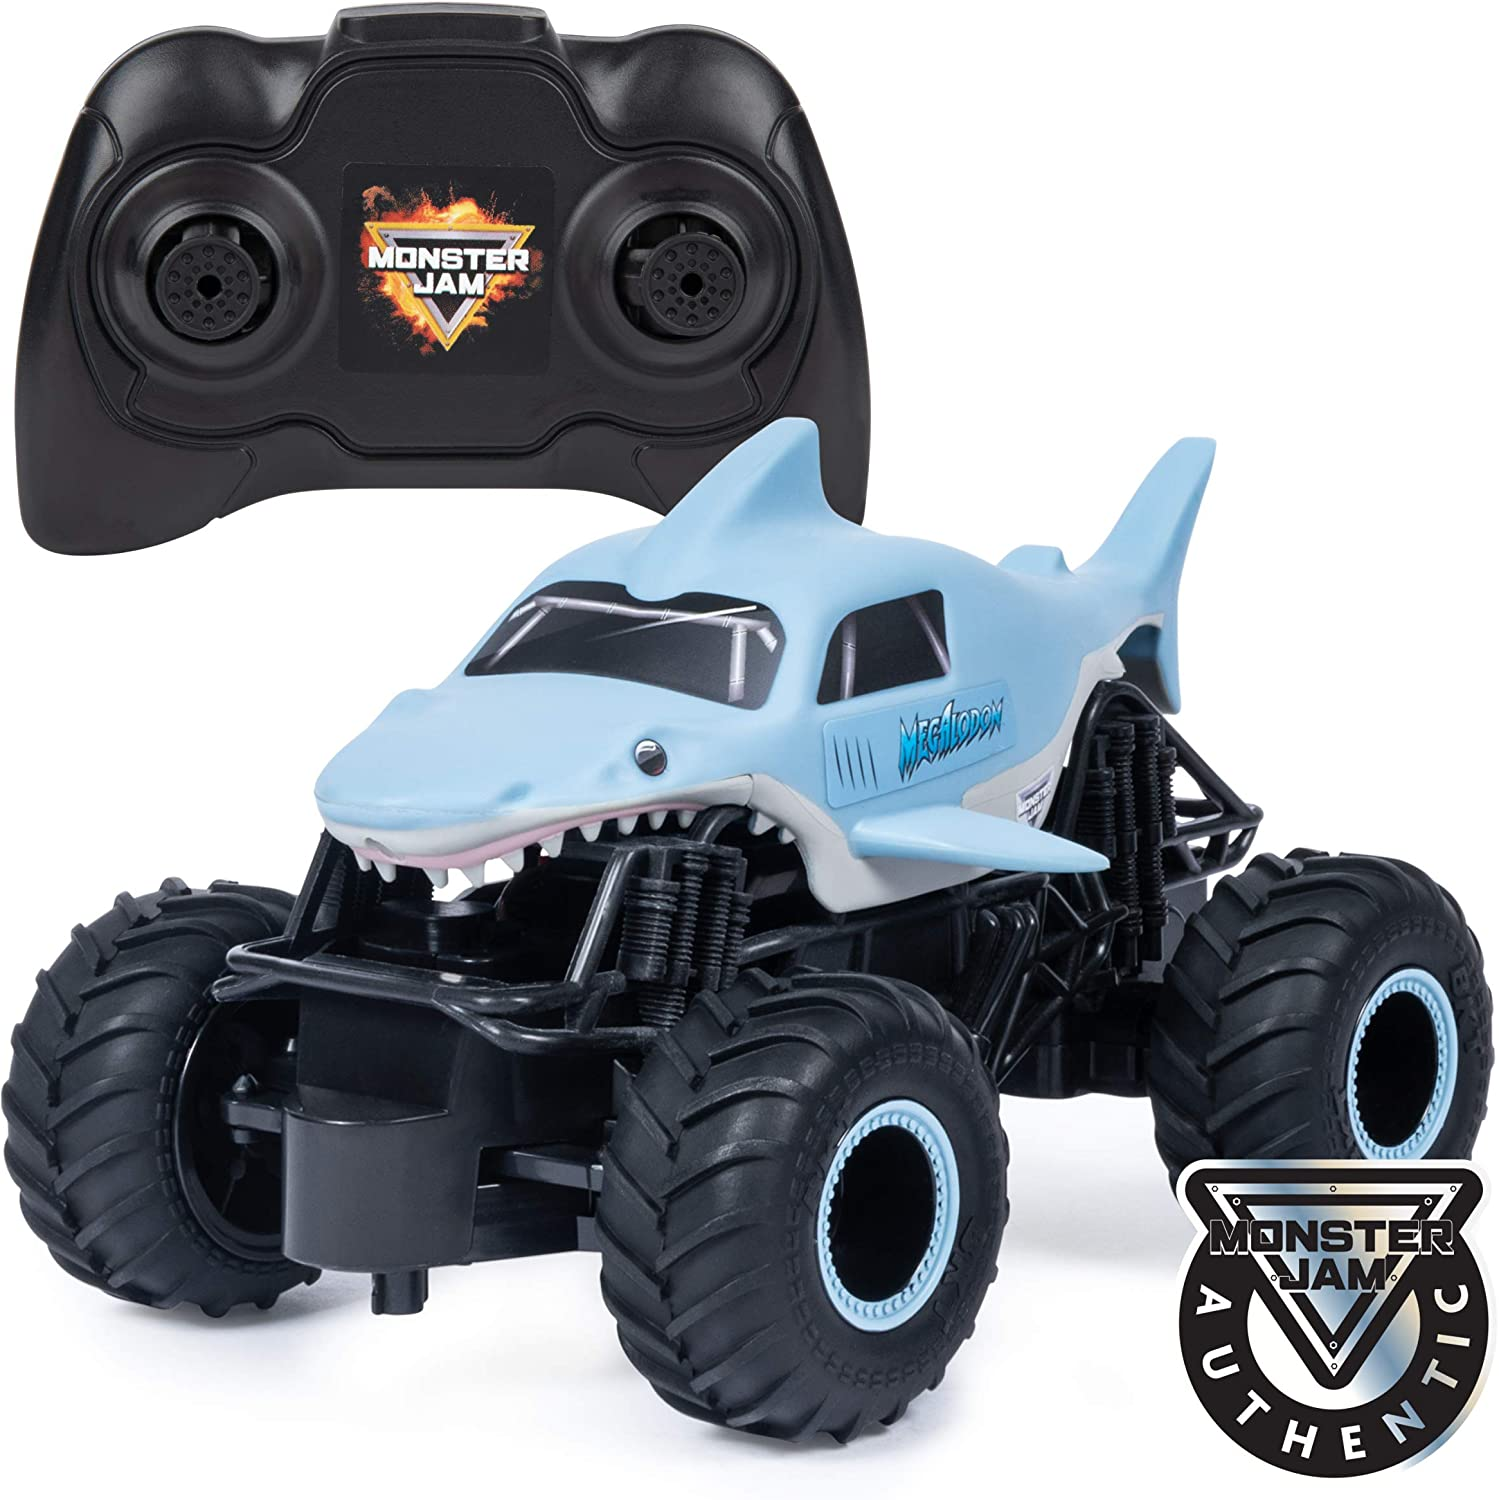 Amazon Com Monster Jam Official Megalodon Remote Control Monster Truck 1 24 Scale 2 4 Ghz For Ages 4 And Up Toys Games